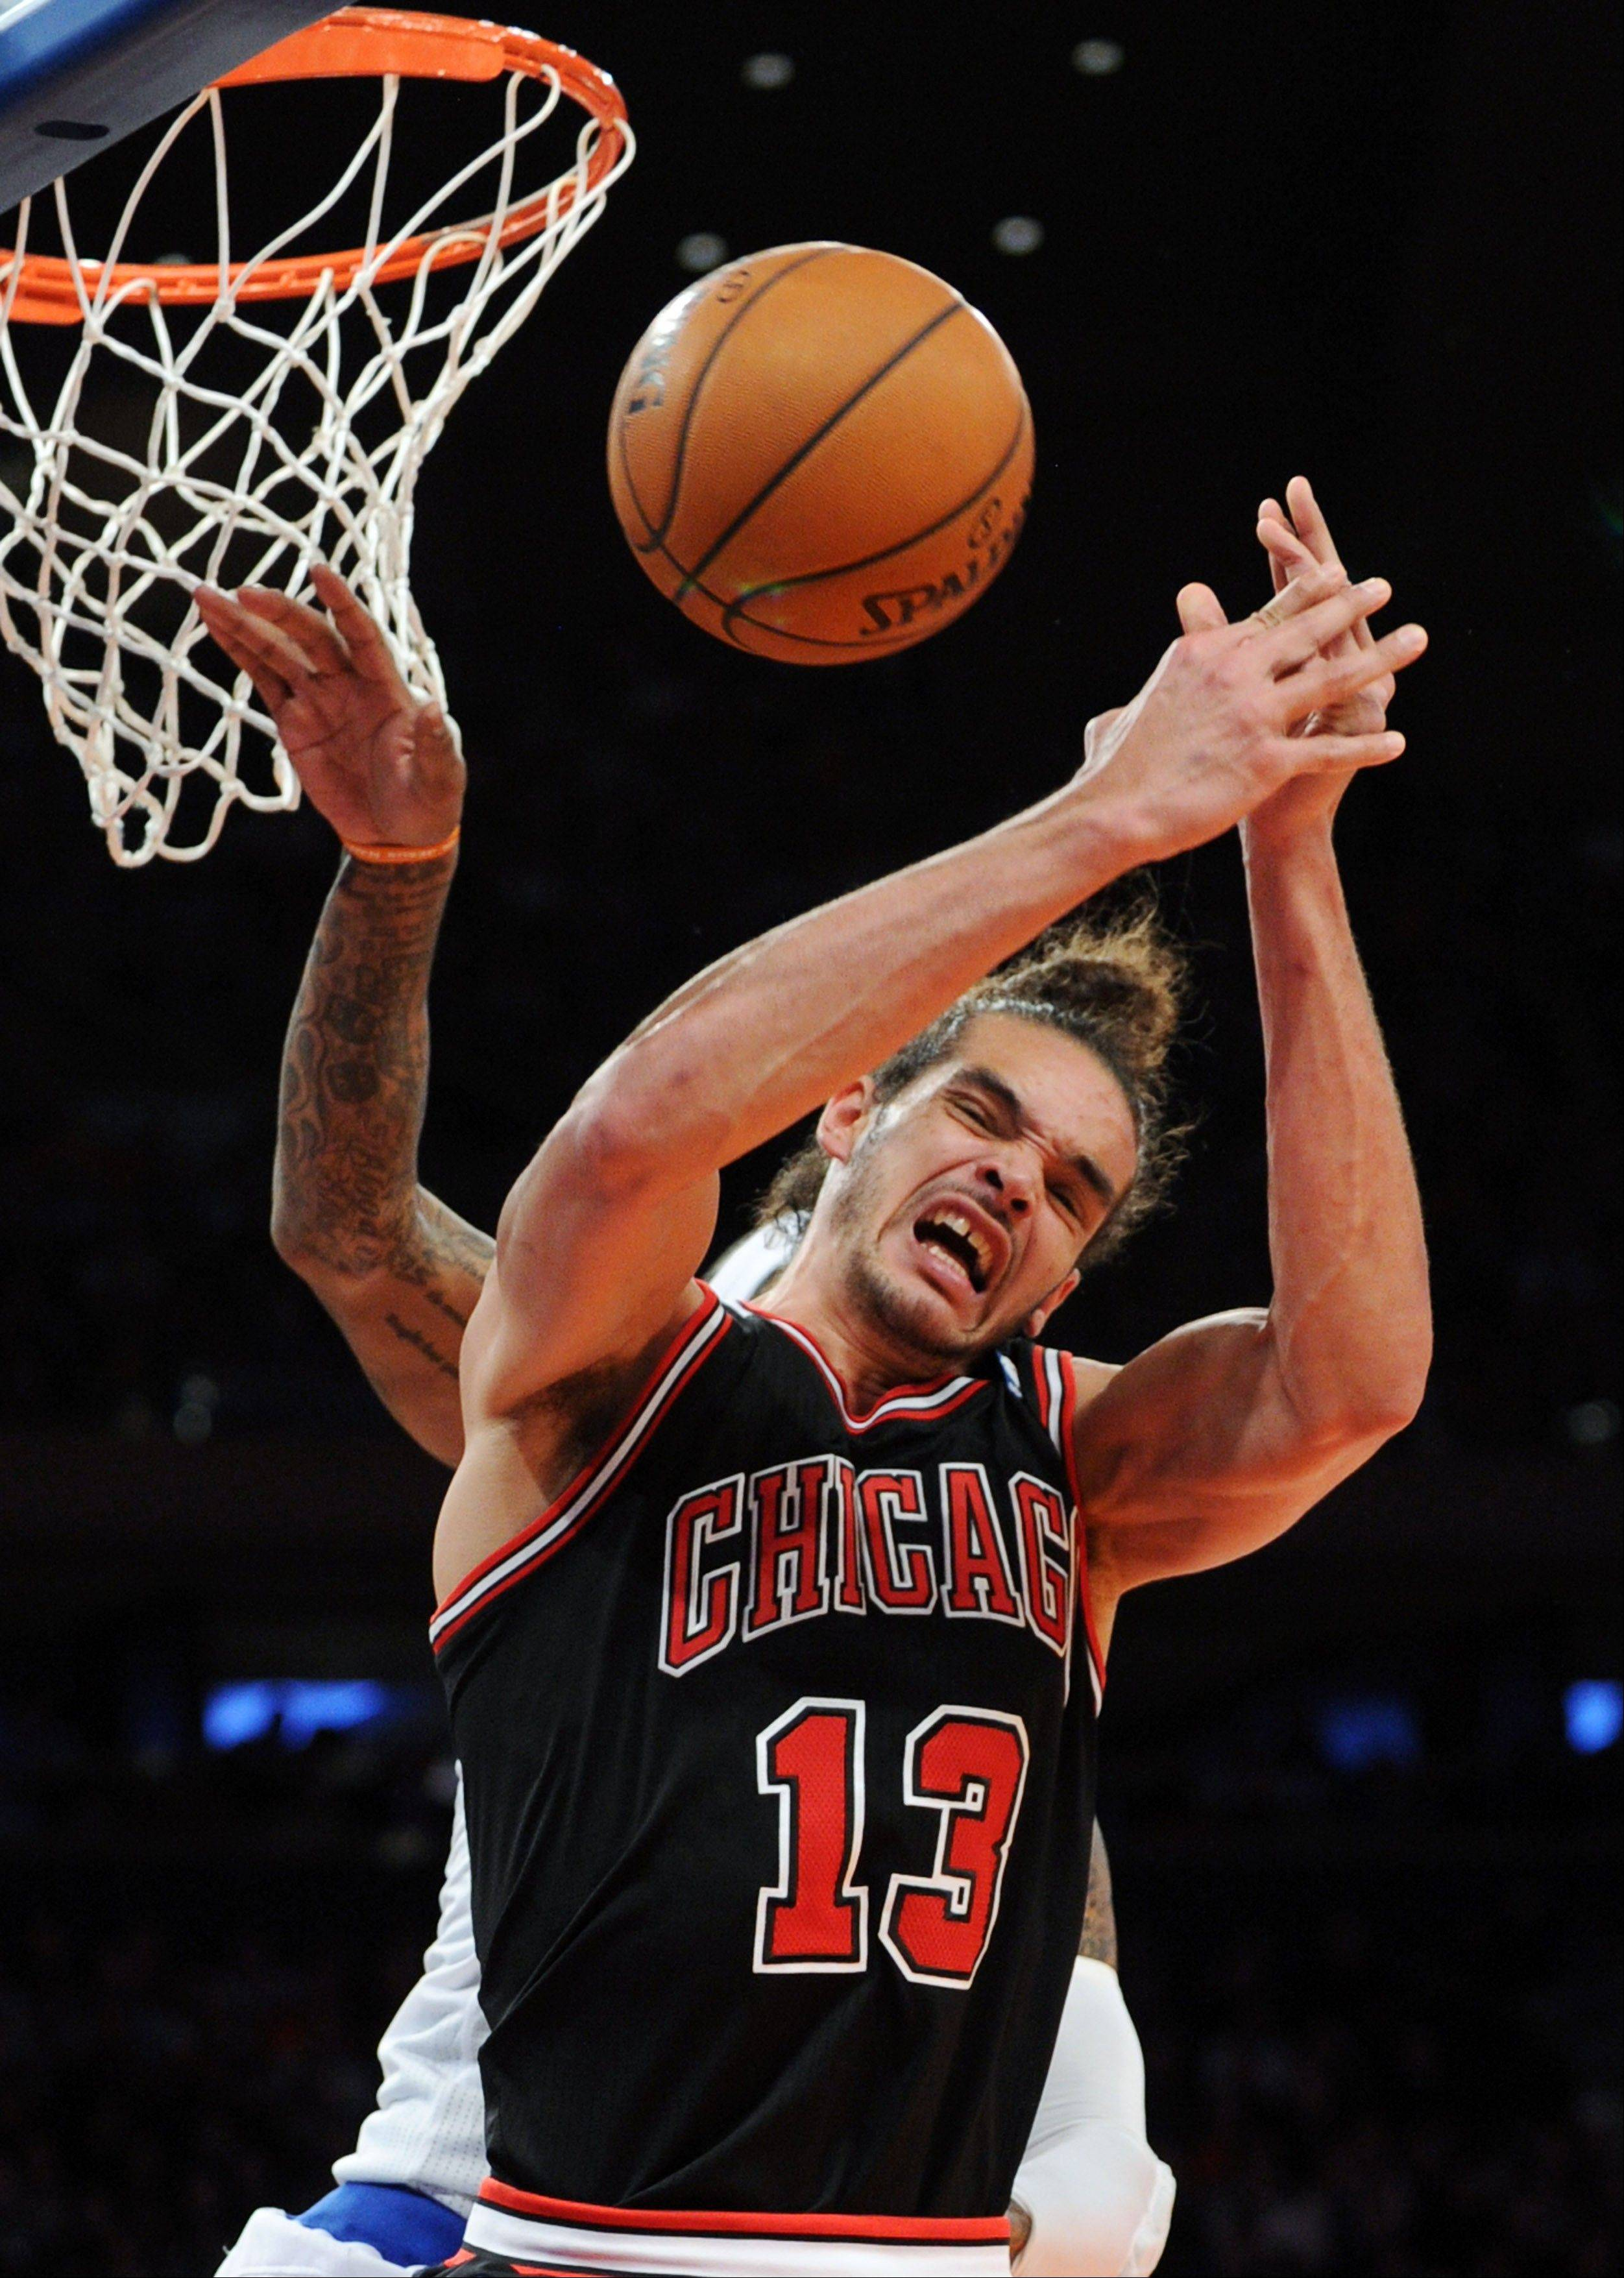 Joakim Noah has had a solid season, averaging 12.3 points and 10.6 rebounds.